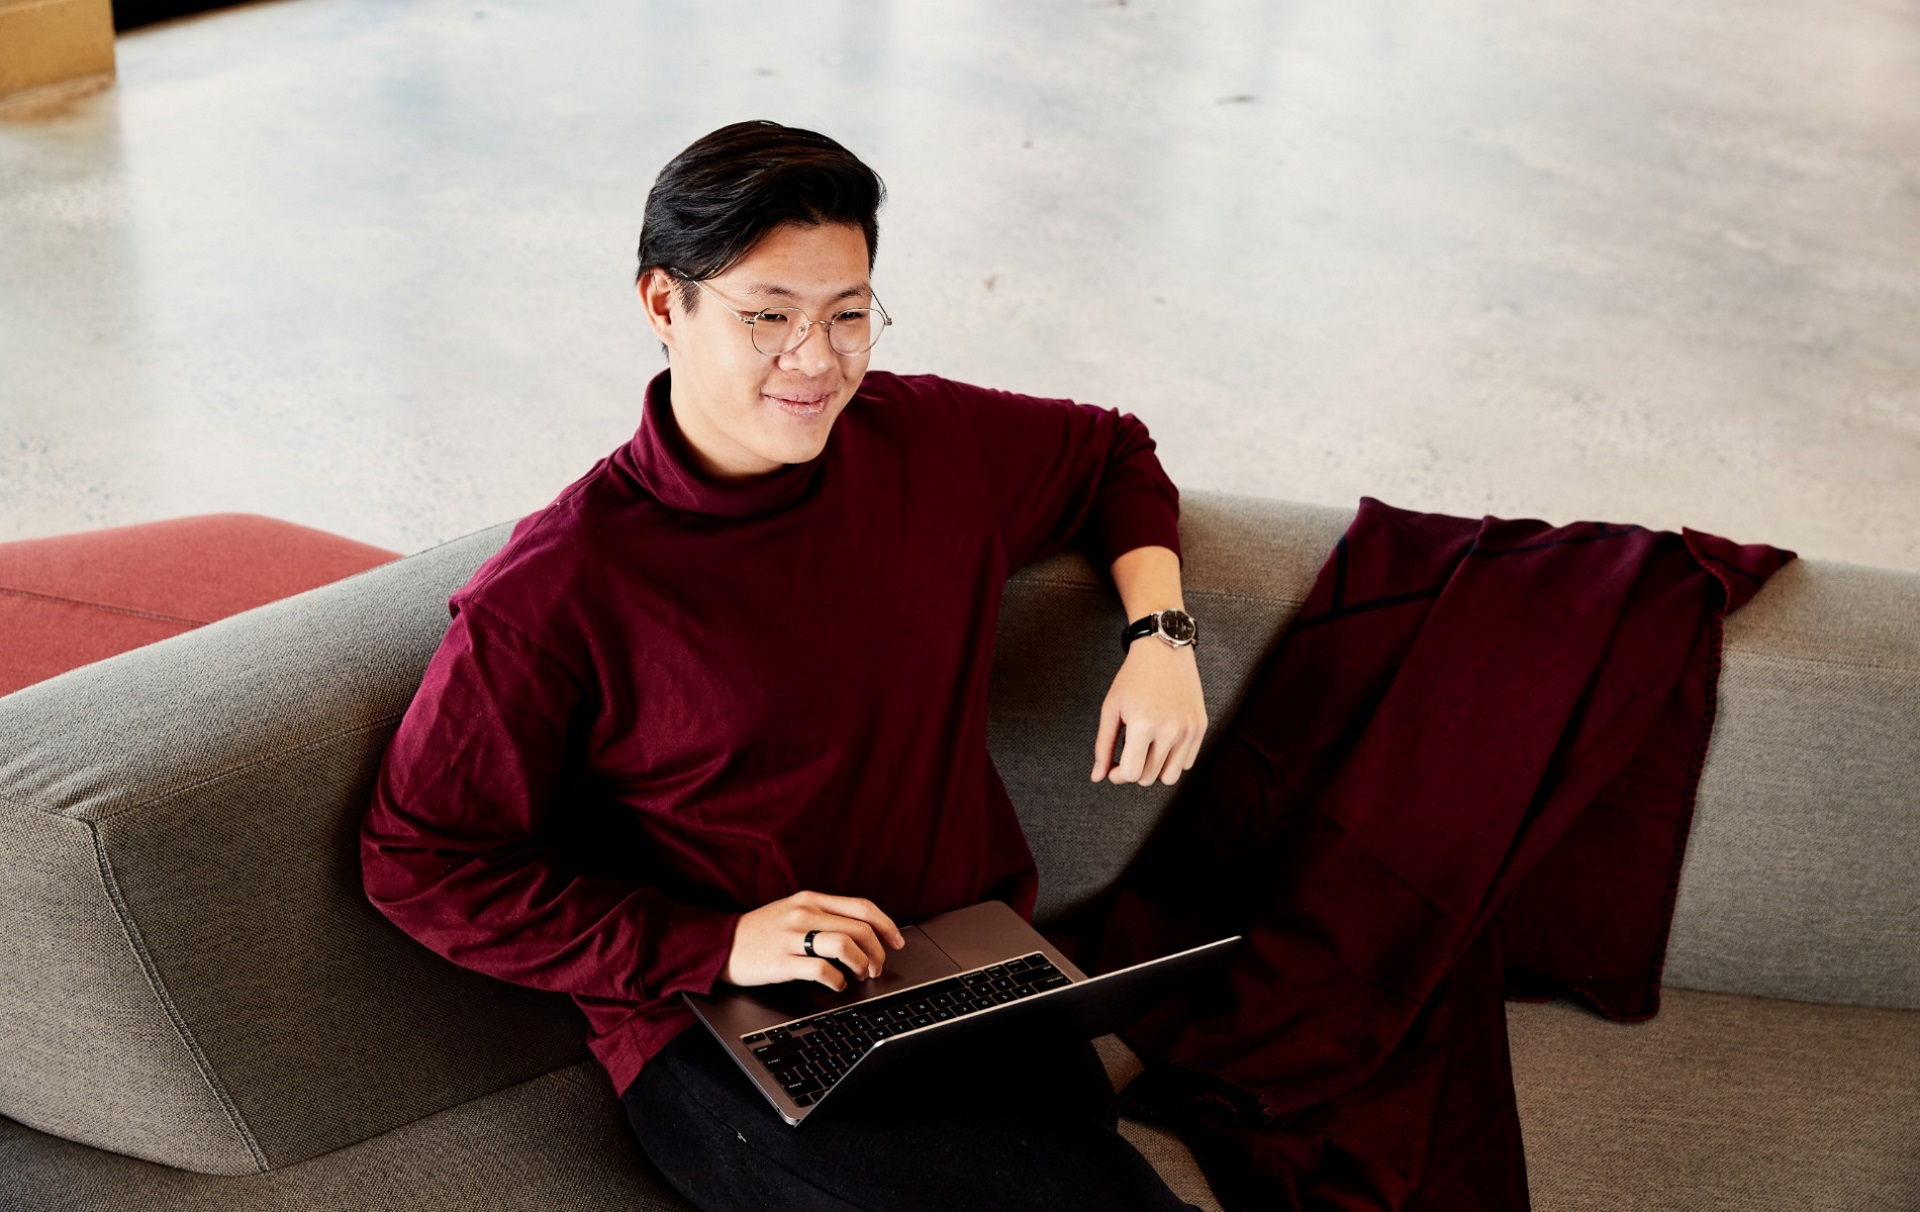 Tien sitting on couch with laptop